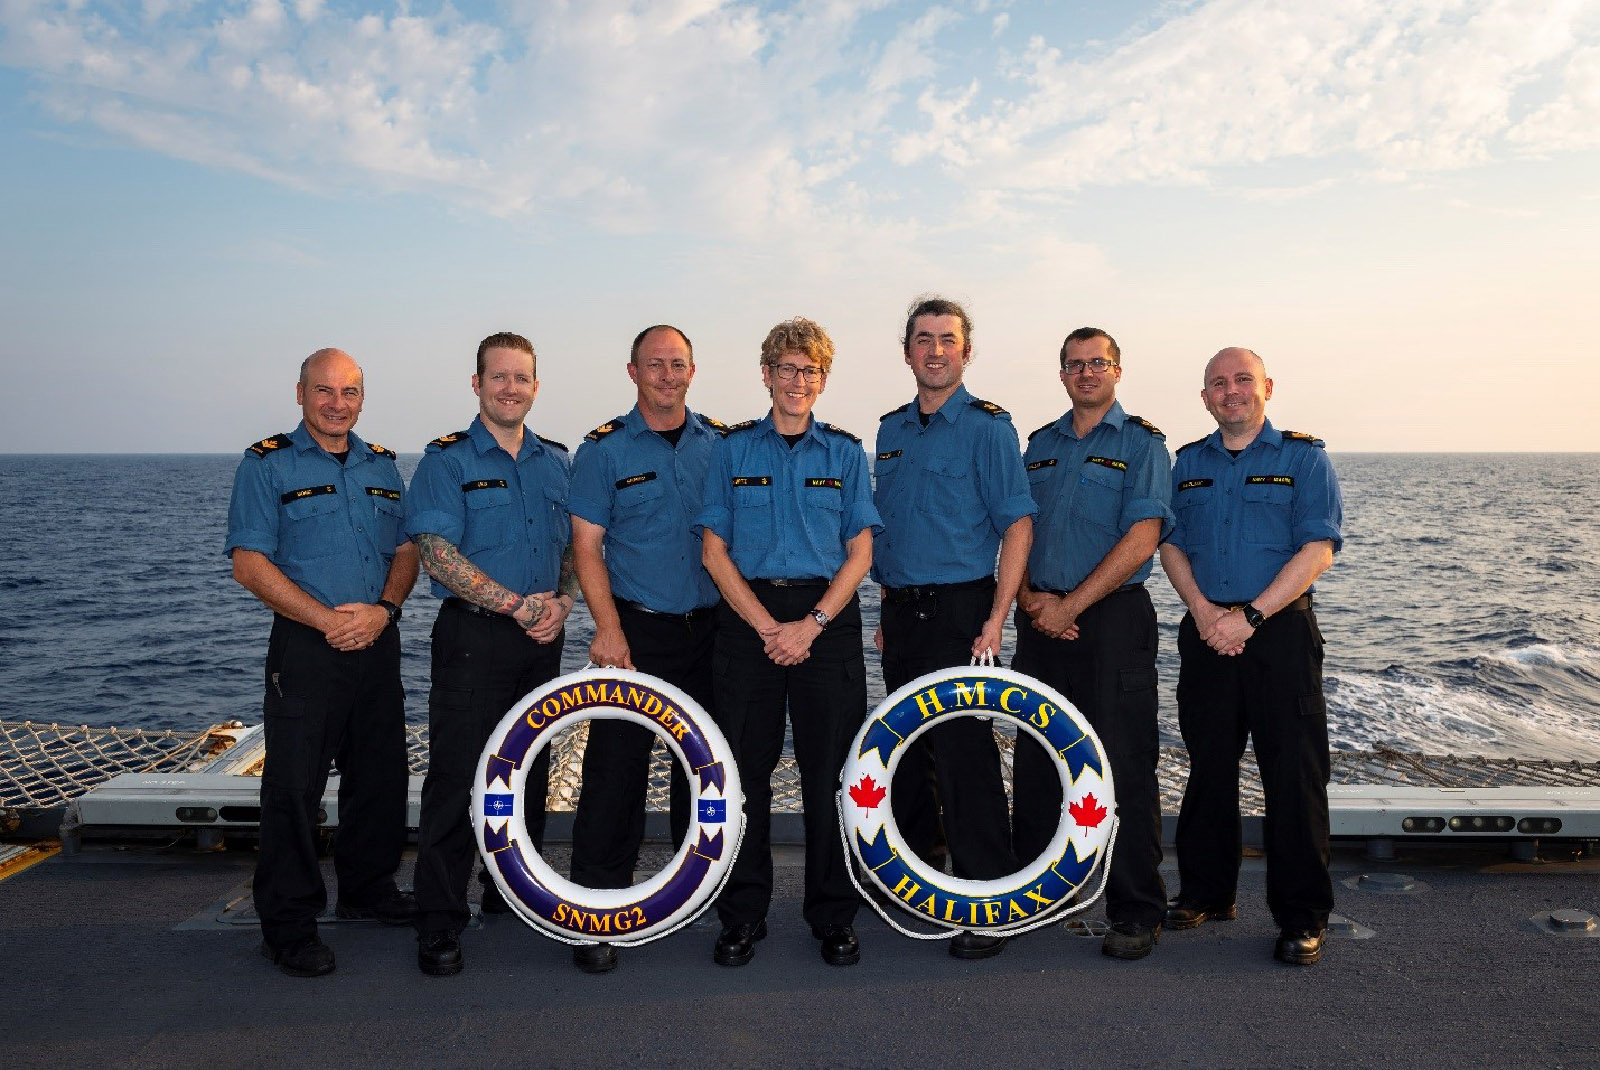 Commodore Josée Kurtz and six sailors who served with her in HMCS Halifax both during her 2009-2010 command and during Operation REASSURANCE in 2019. From left: Master Seaman Moniz, Petty Officer Second Class Gray, Petty Officer Second Class Harnish, Commodore Kurtz, Petty Officer First Class Stevens, Master Seaman Miller, and Petty Officer Second Class Maclean.